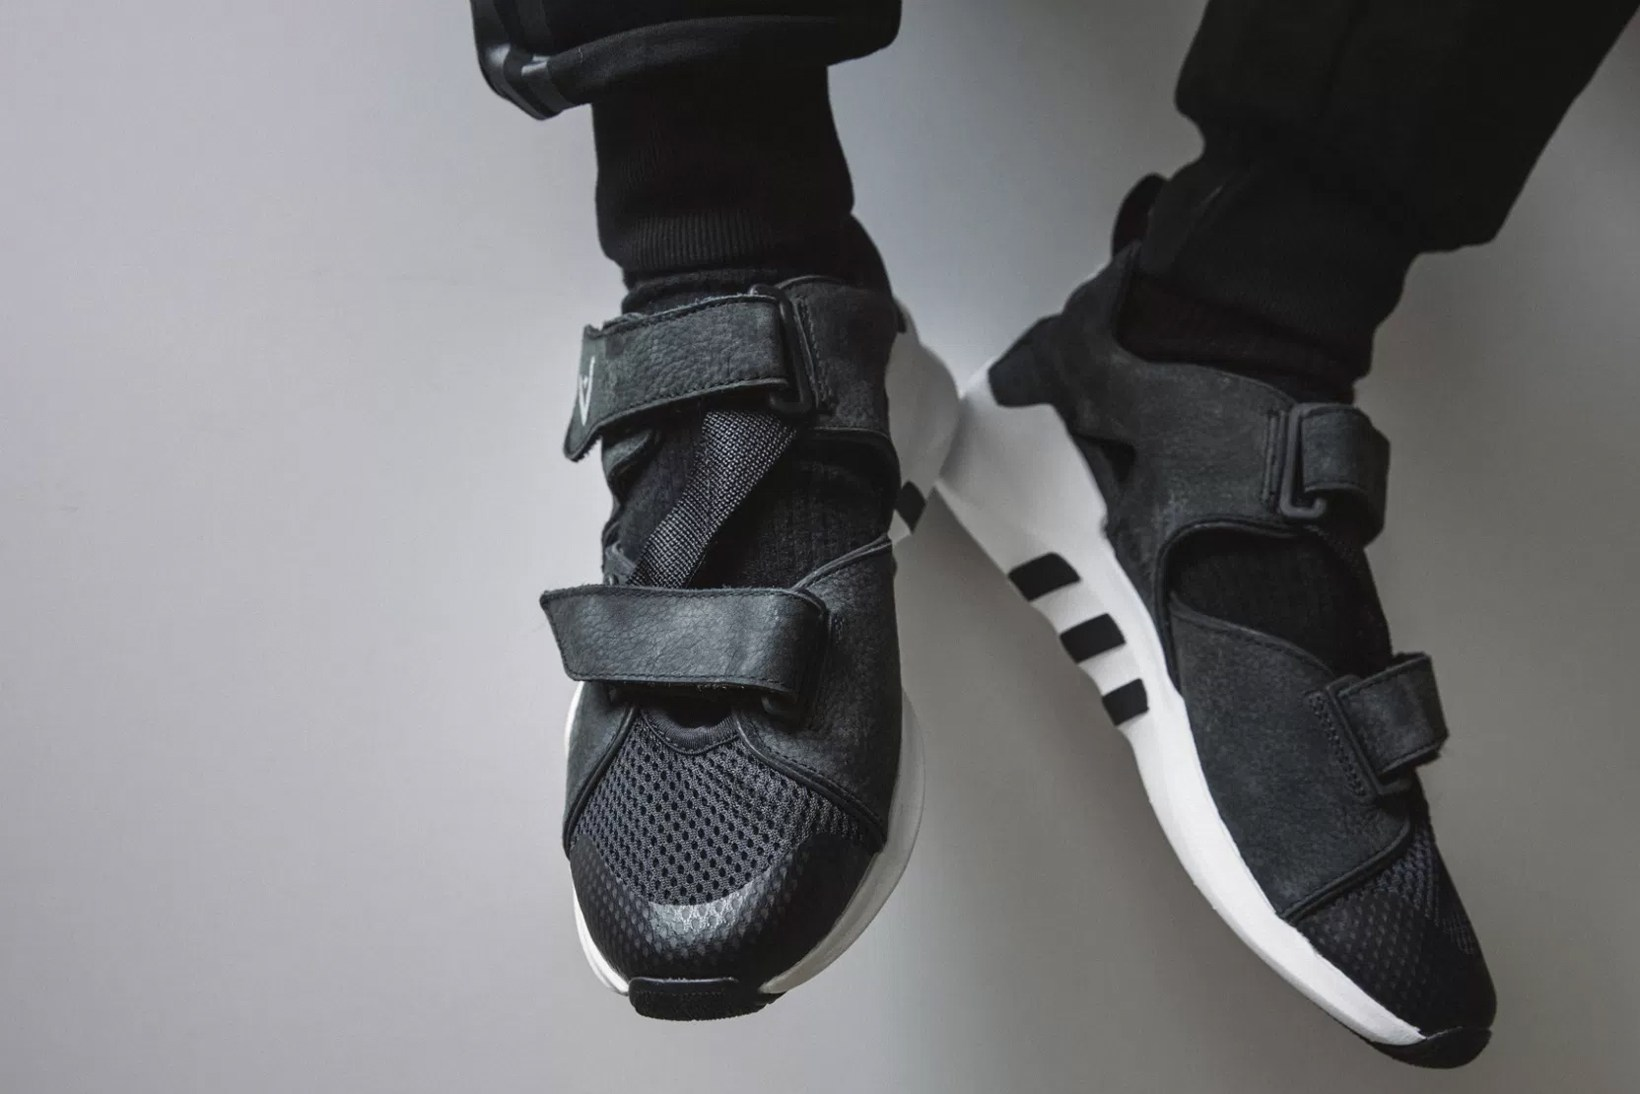 c7449770b9e4 White Mountaineering and adidas Originals Are Releasing an Entire